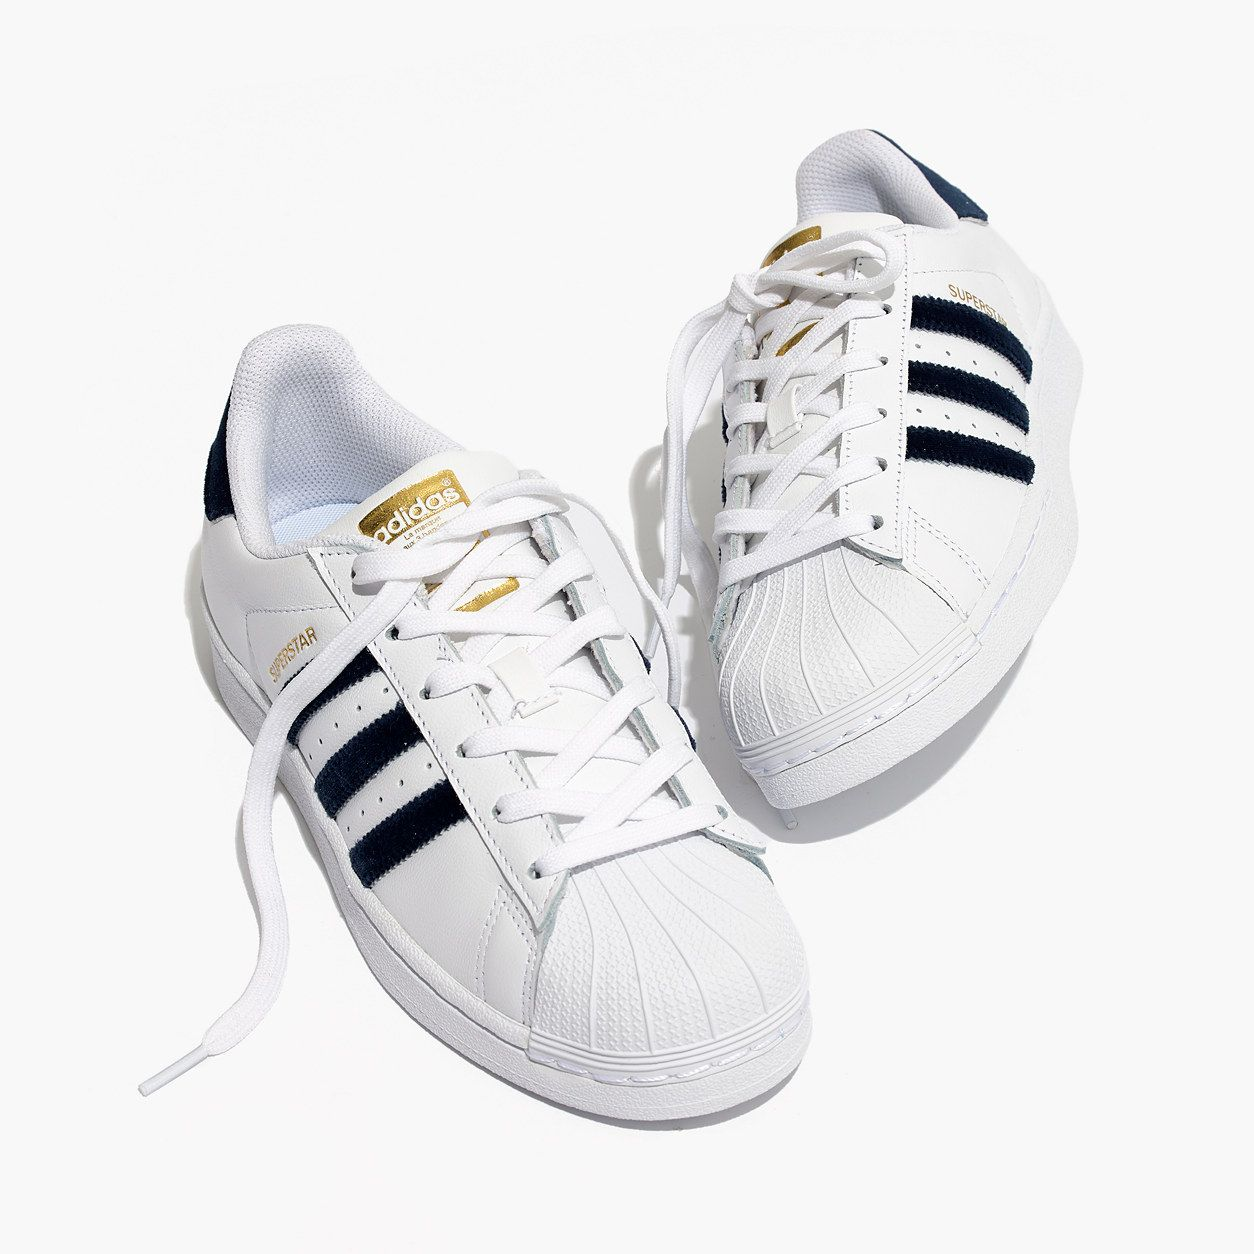 finest selection 896e2 8140e Madewell Womens Adidas Superstar Lace-Up Sneakers In Velvet